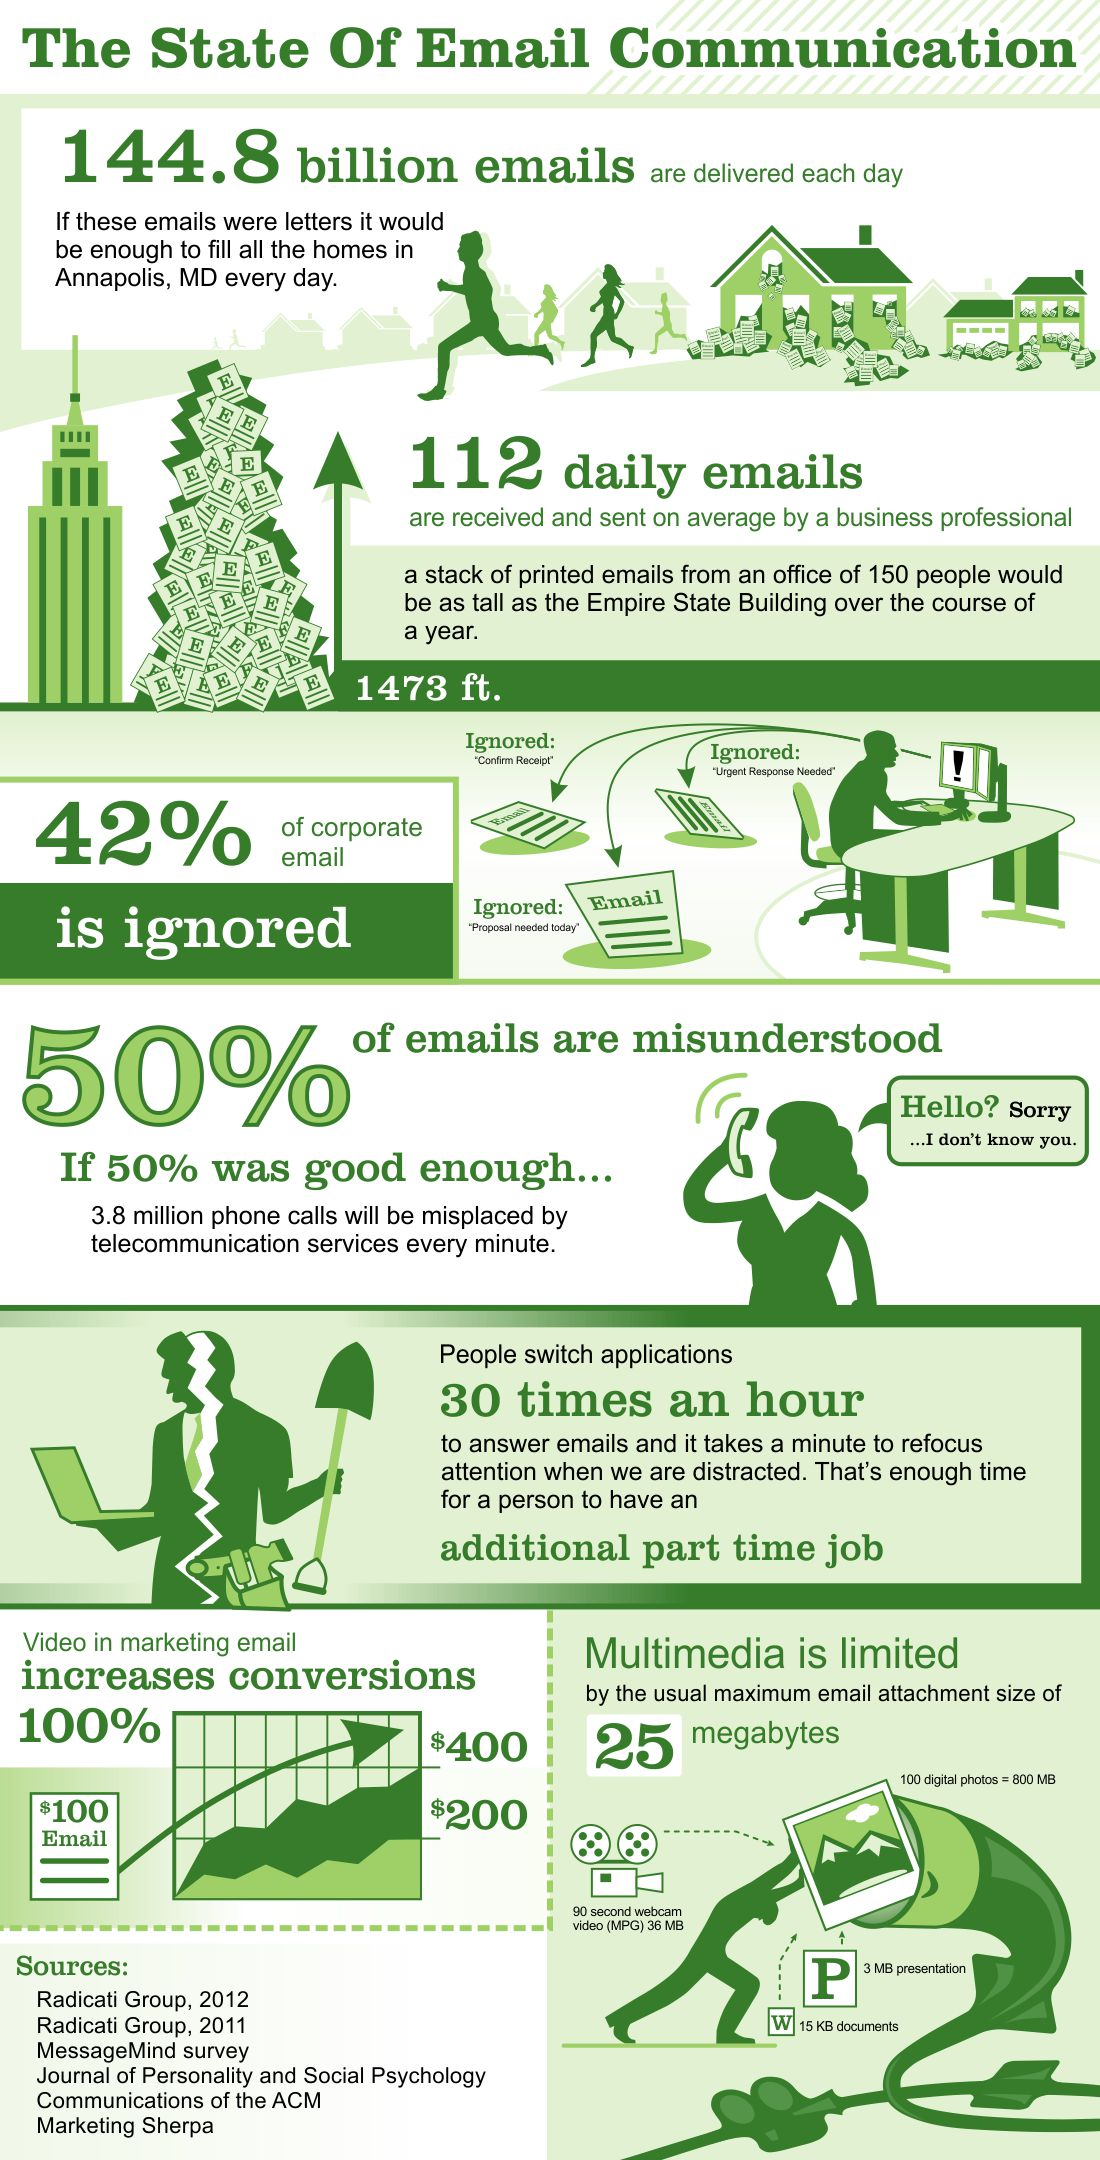 via680 email infographic VMAIL is the new EMAIL